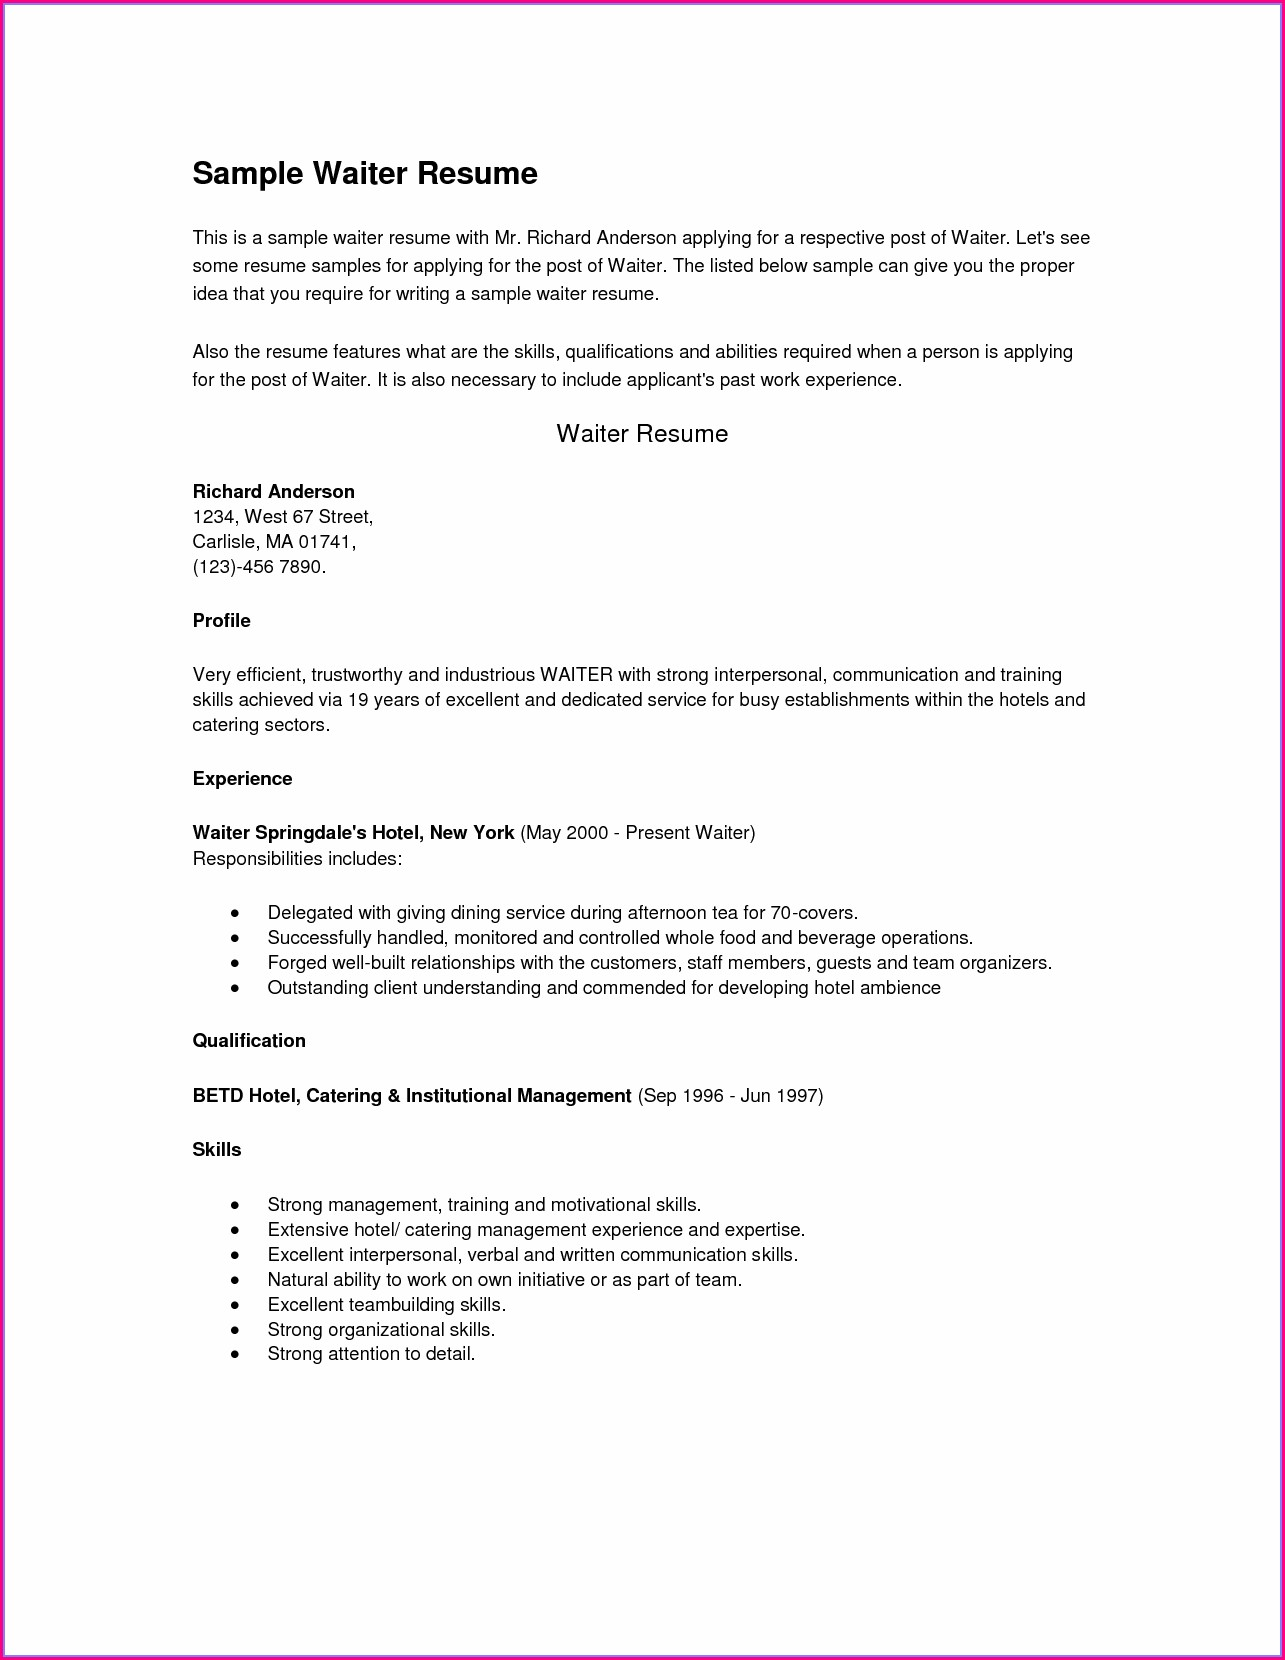 Free Resume Templates For Restaurant Servers